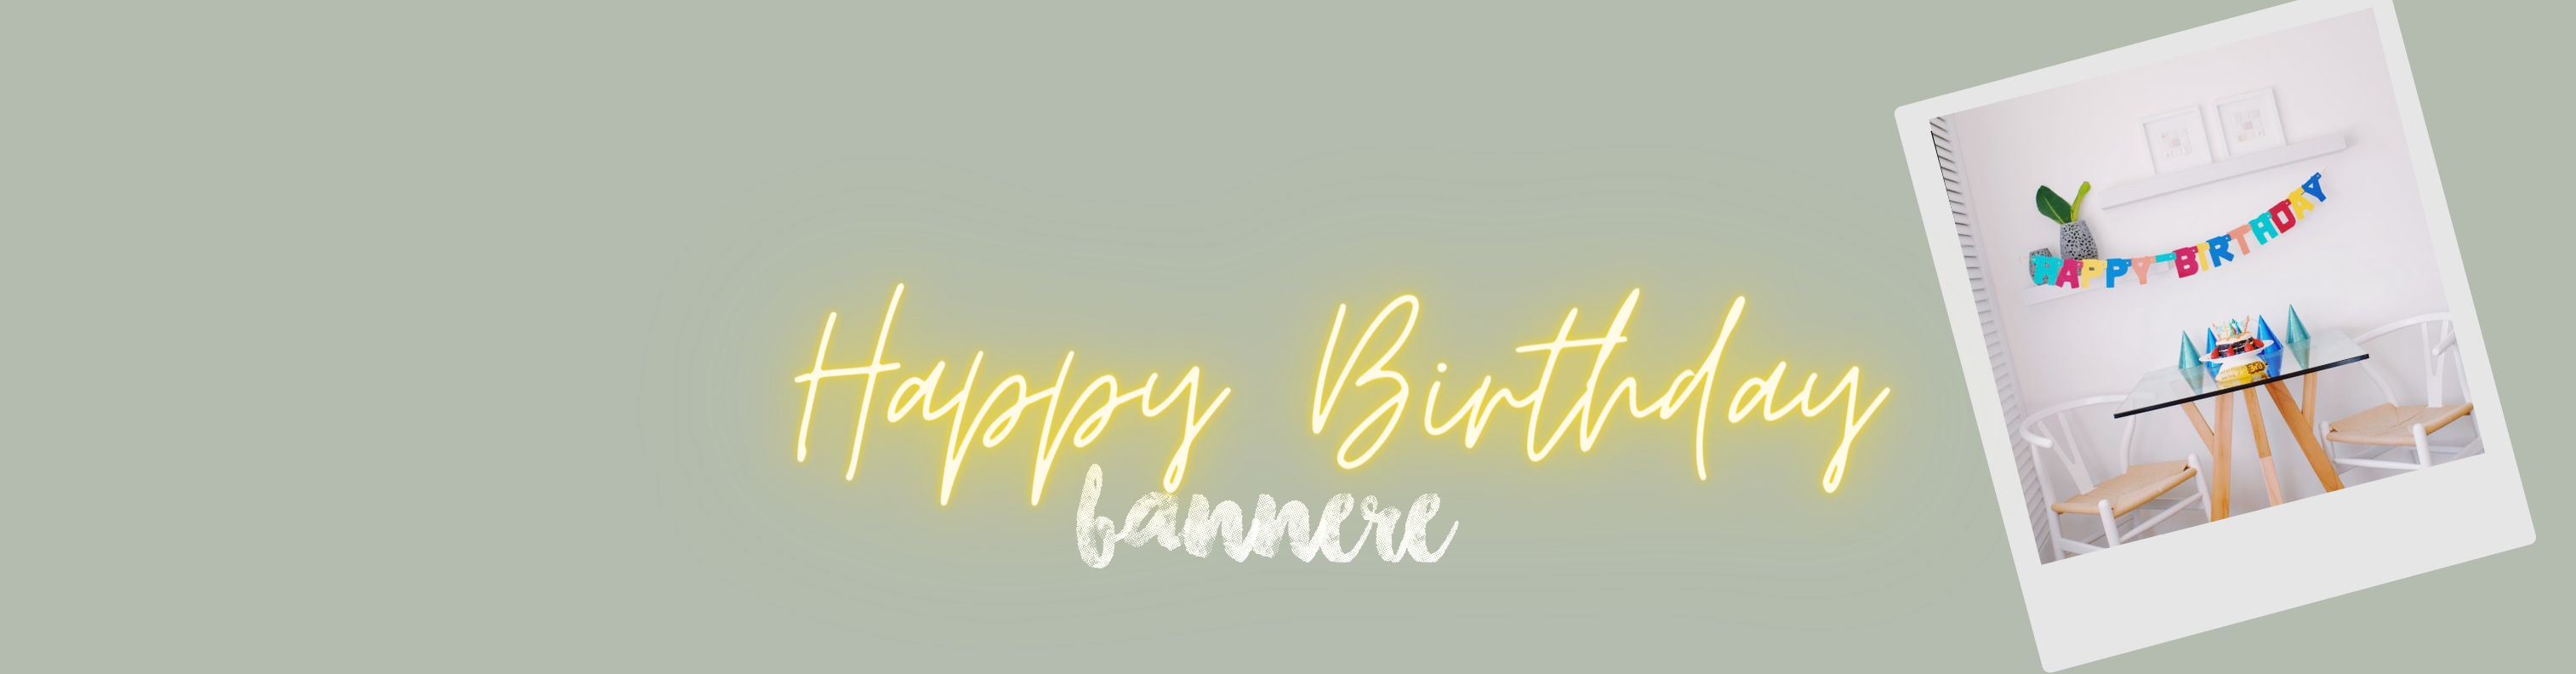 bannere happy birthday